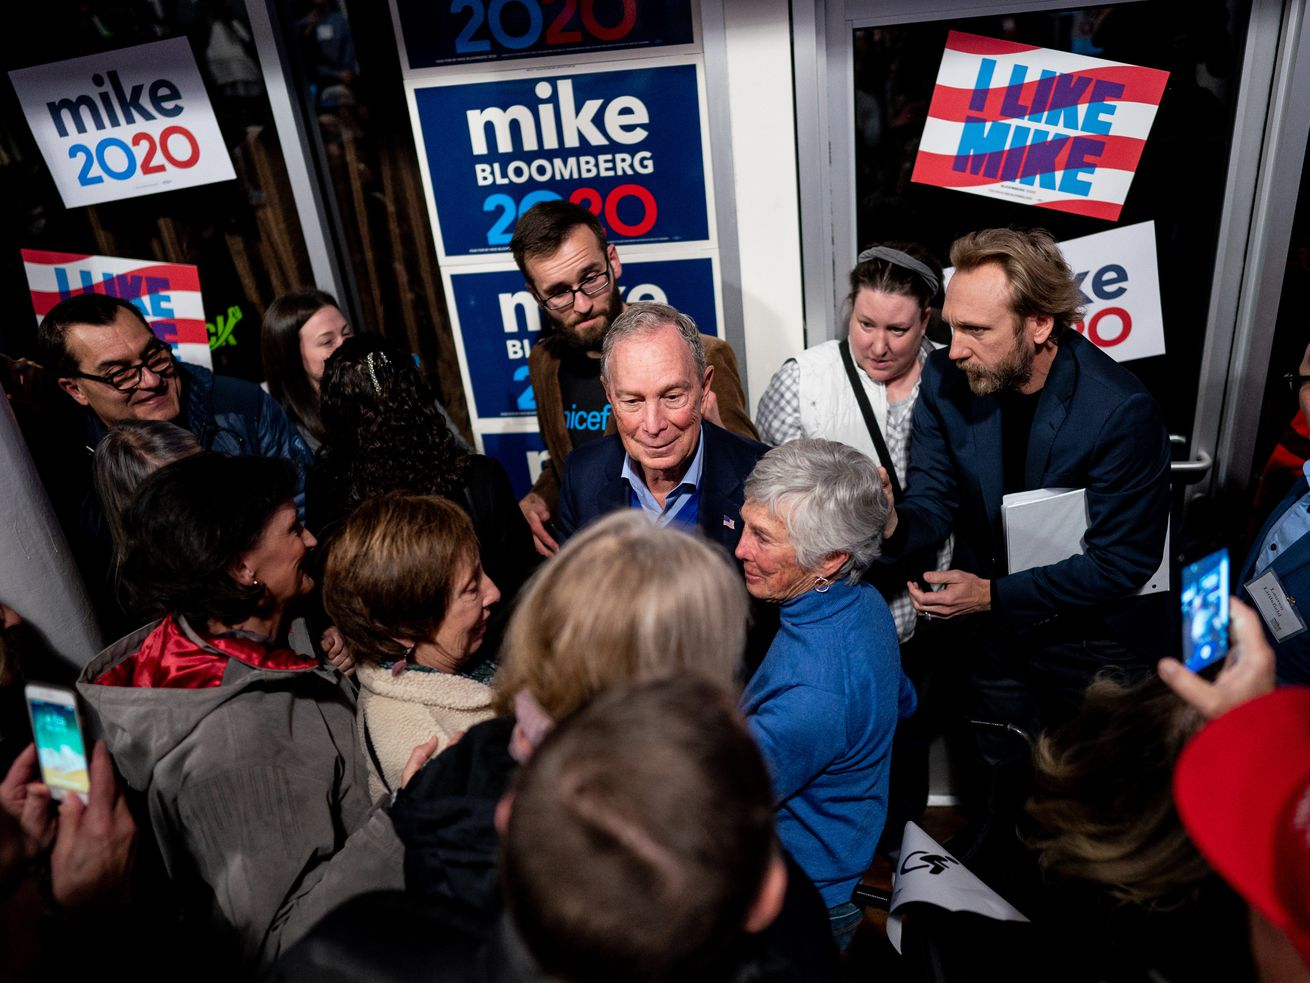 Democratic presidential candidate Mike Bloomberg: 'I know how to unite people'